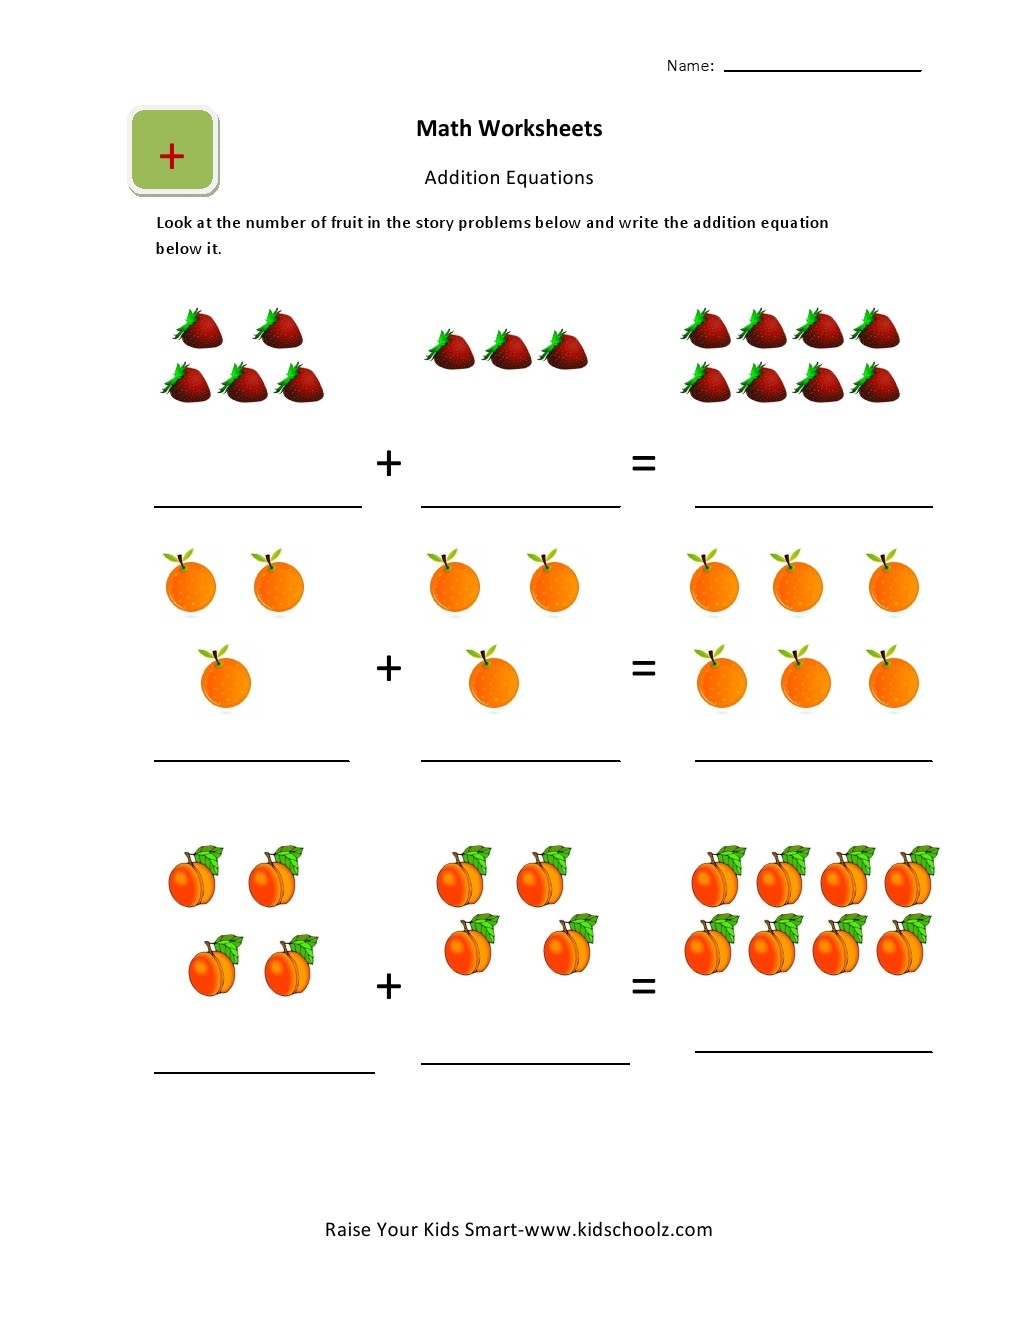 UKGBasic Picture Addition Worksheets for Kids KidschoolzKidschoolz – Addition Worksheet for Kids